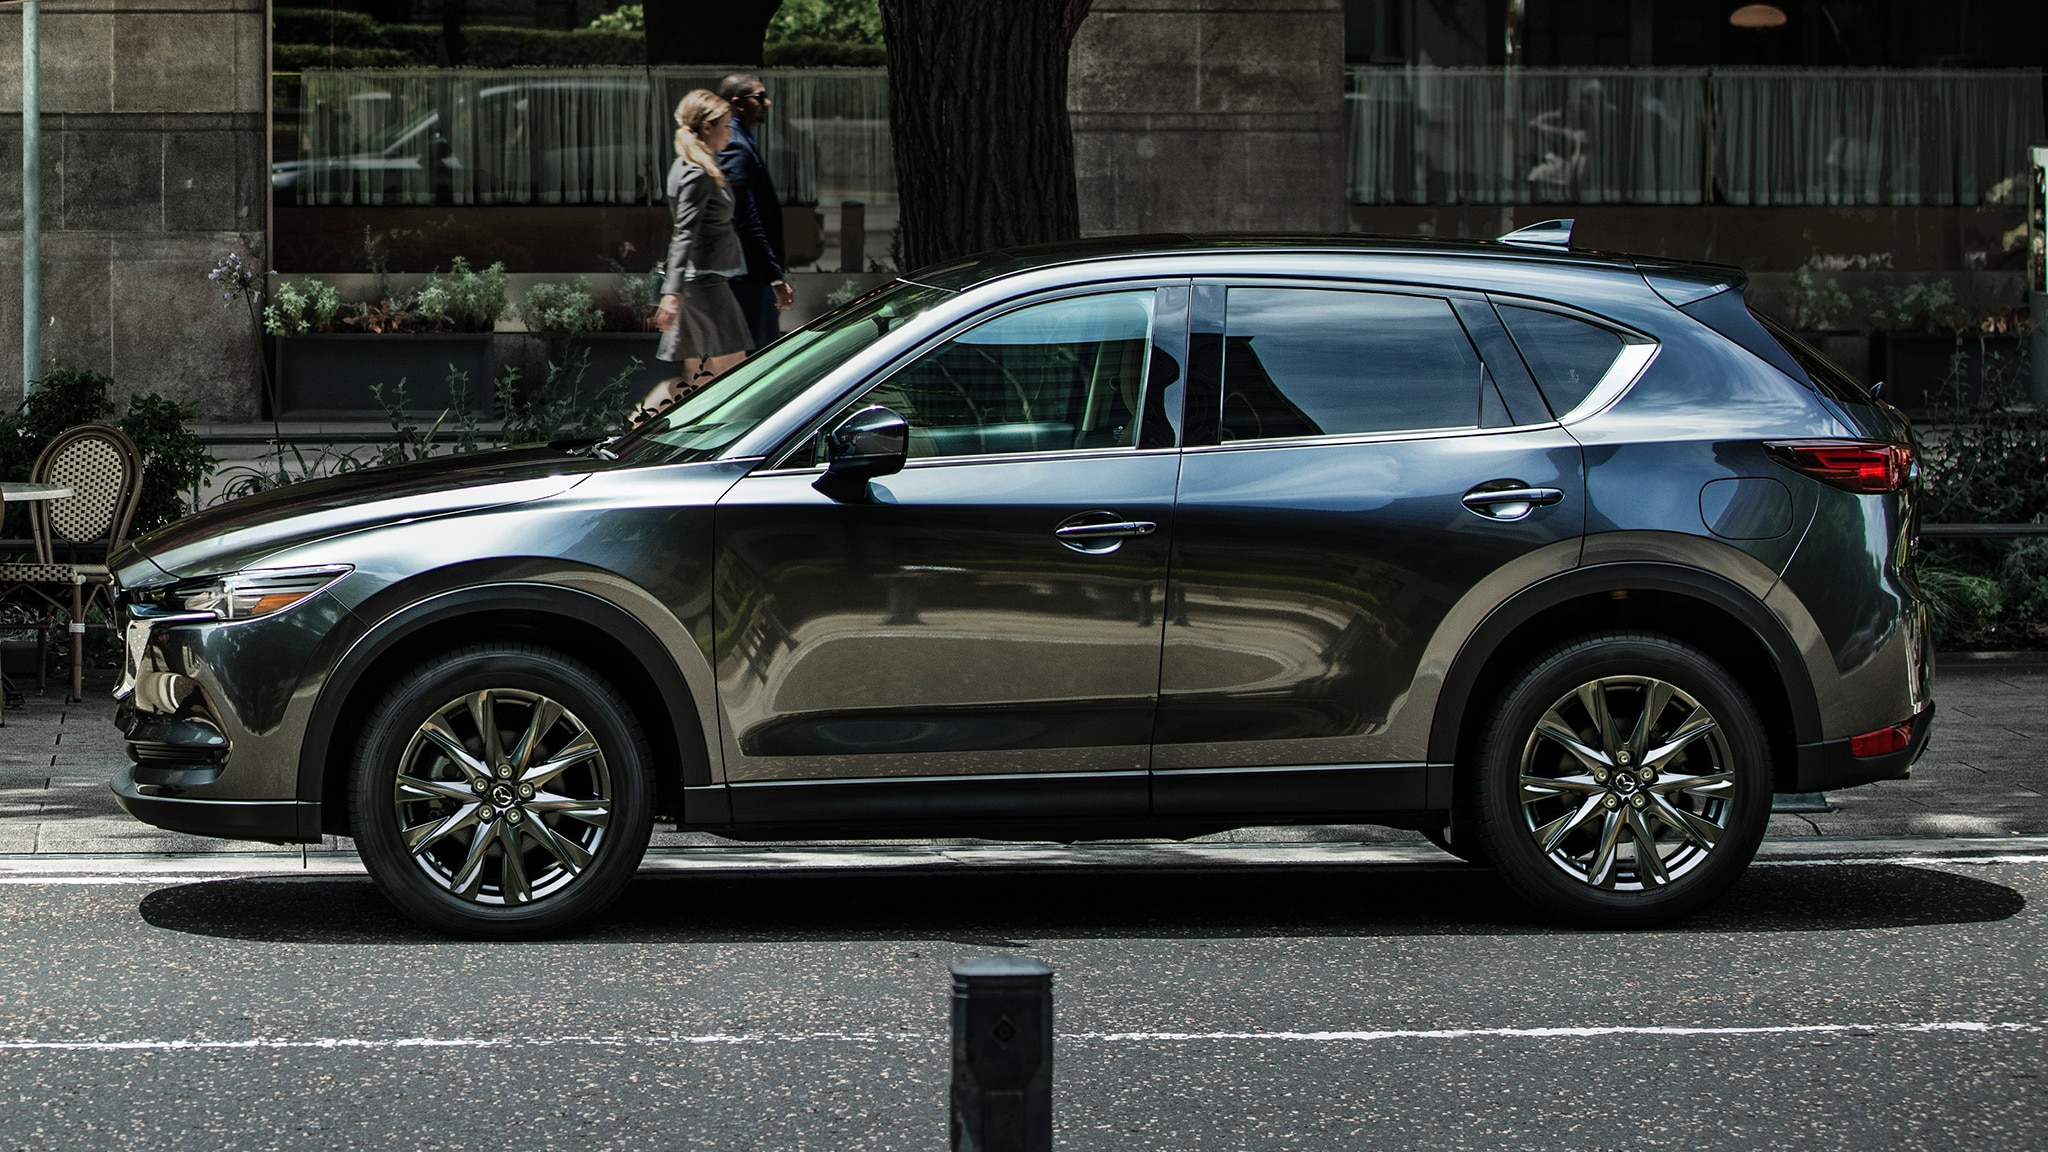 Mazda Cx 5 0 60 >> 2019 Mazda Cx 5 Diesel Review A Good Notion Once